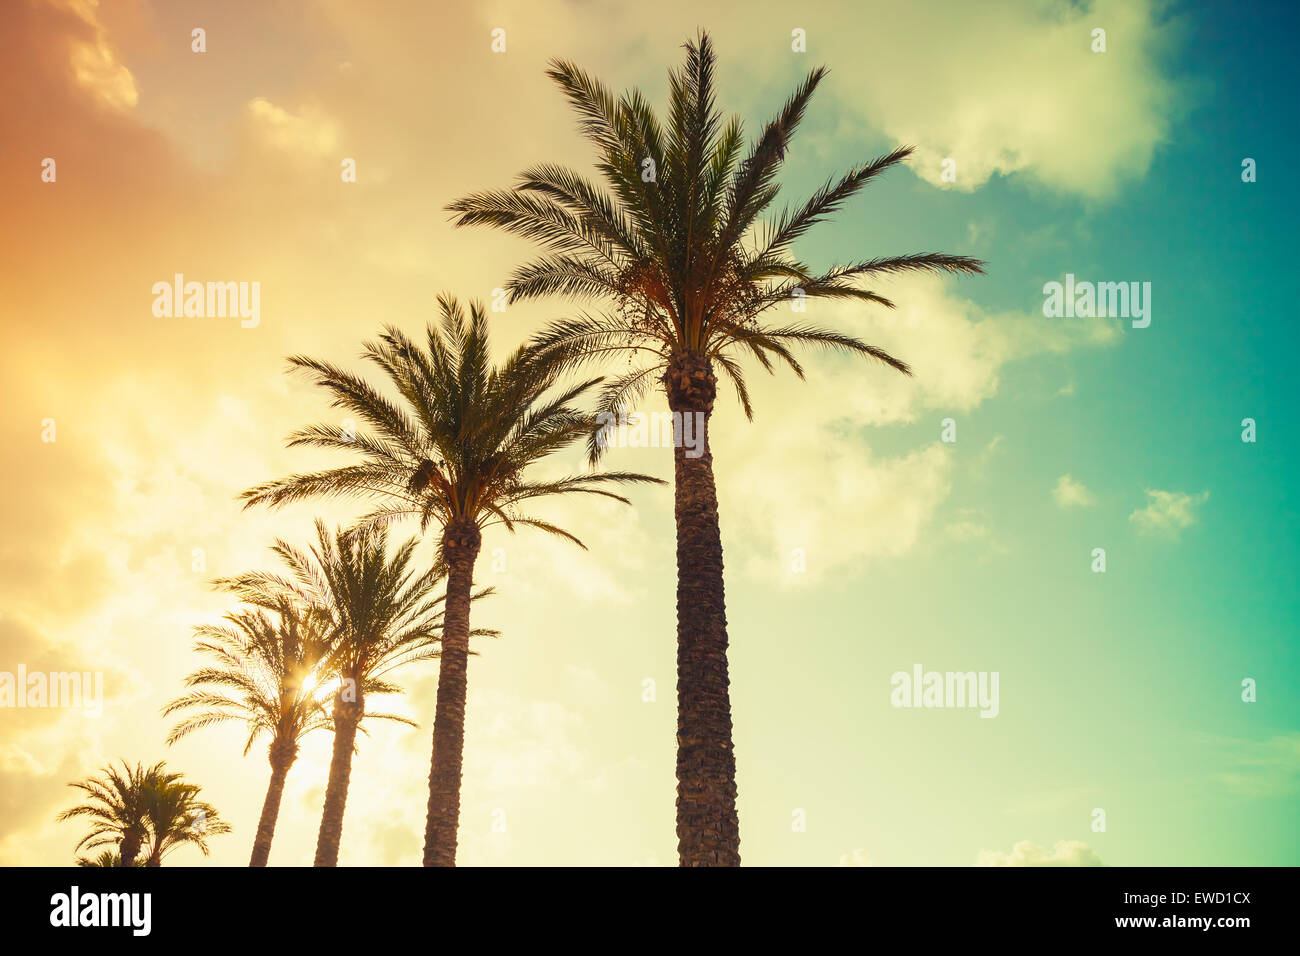 Palm trees and shining sun over cloudy sky background  Vintage style